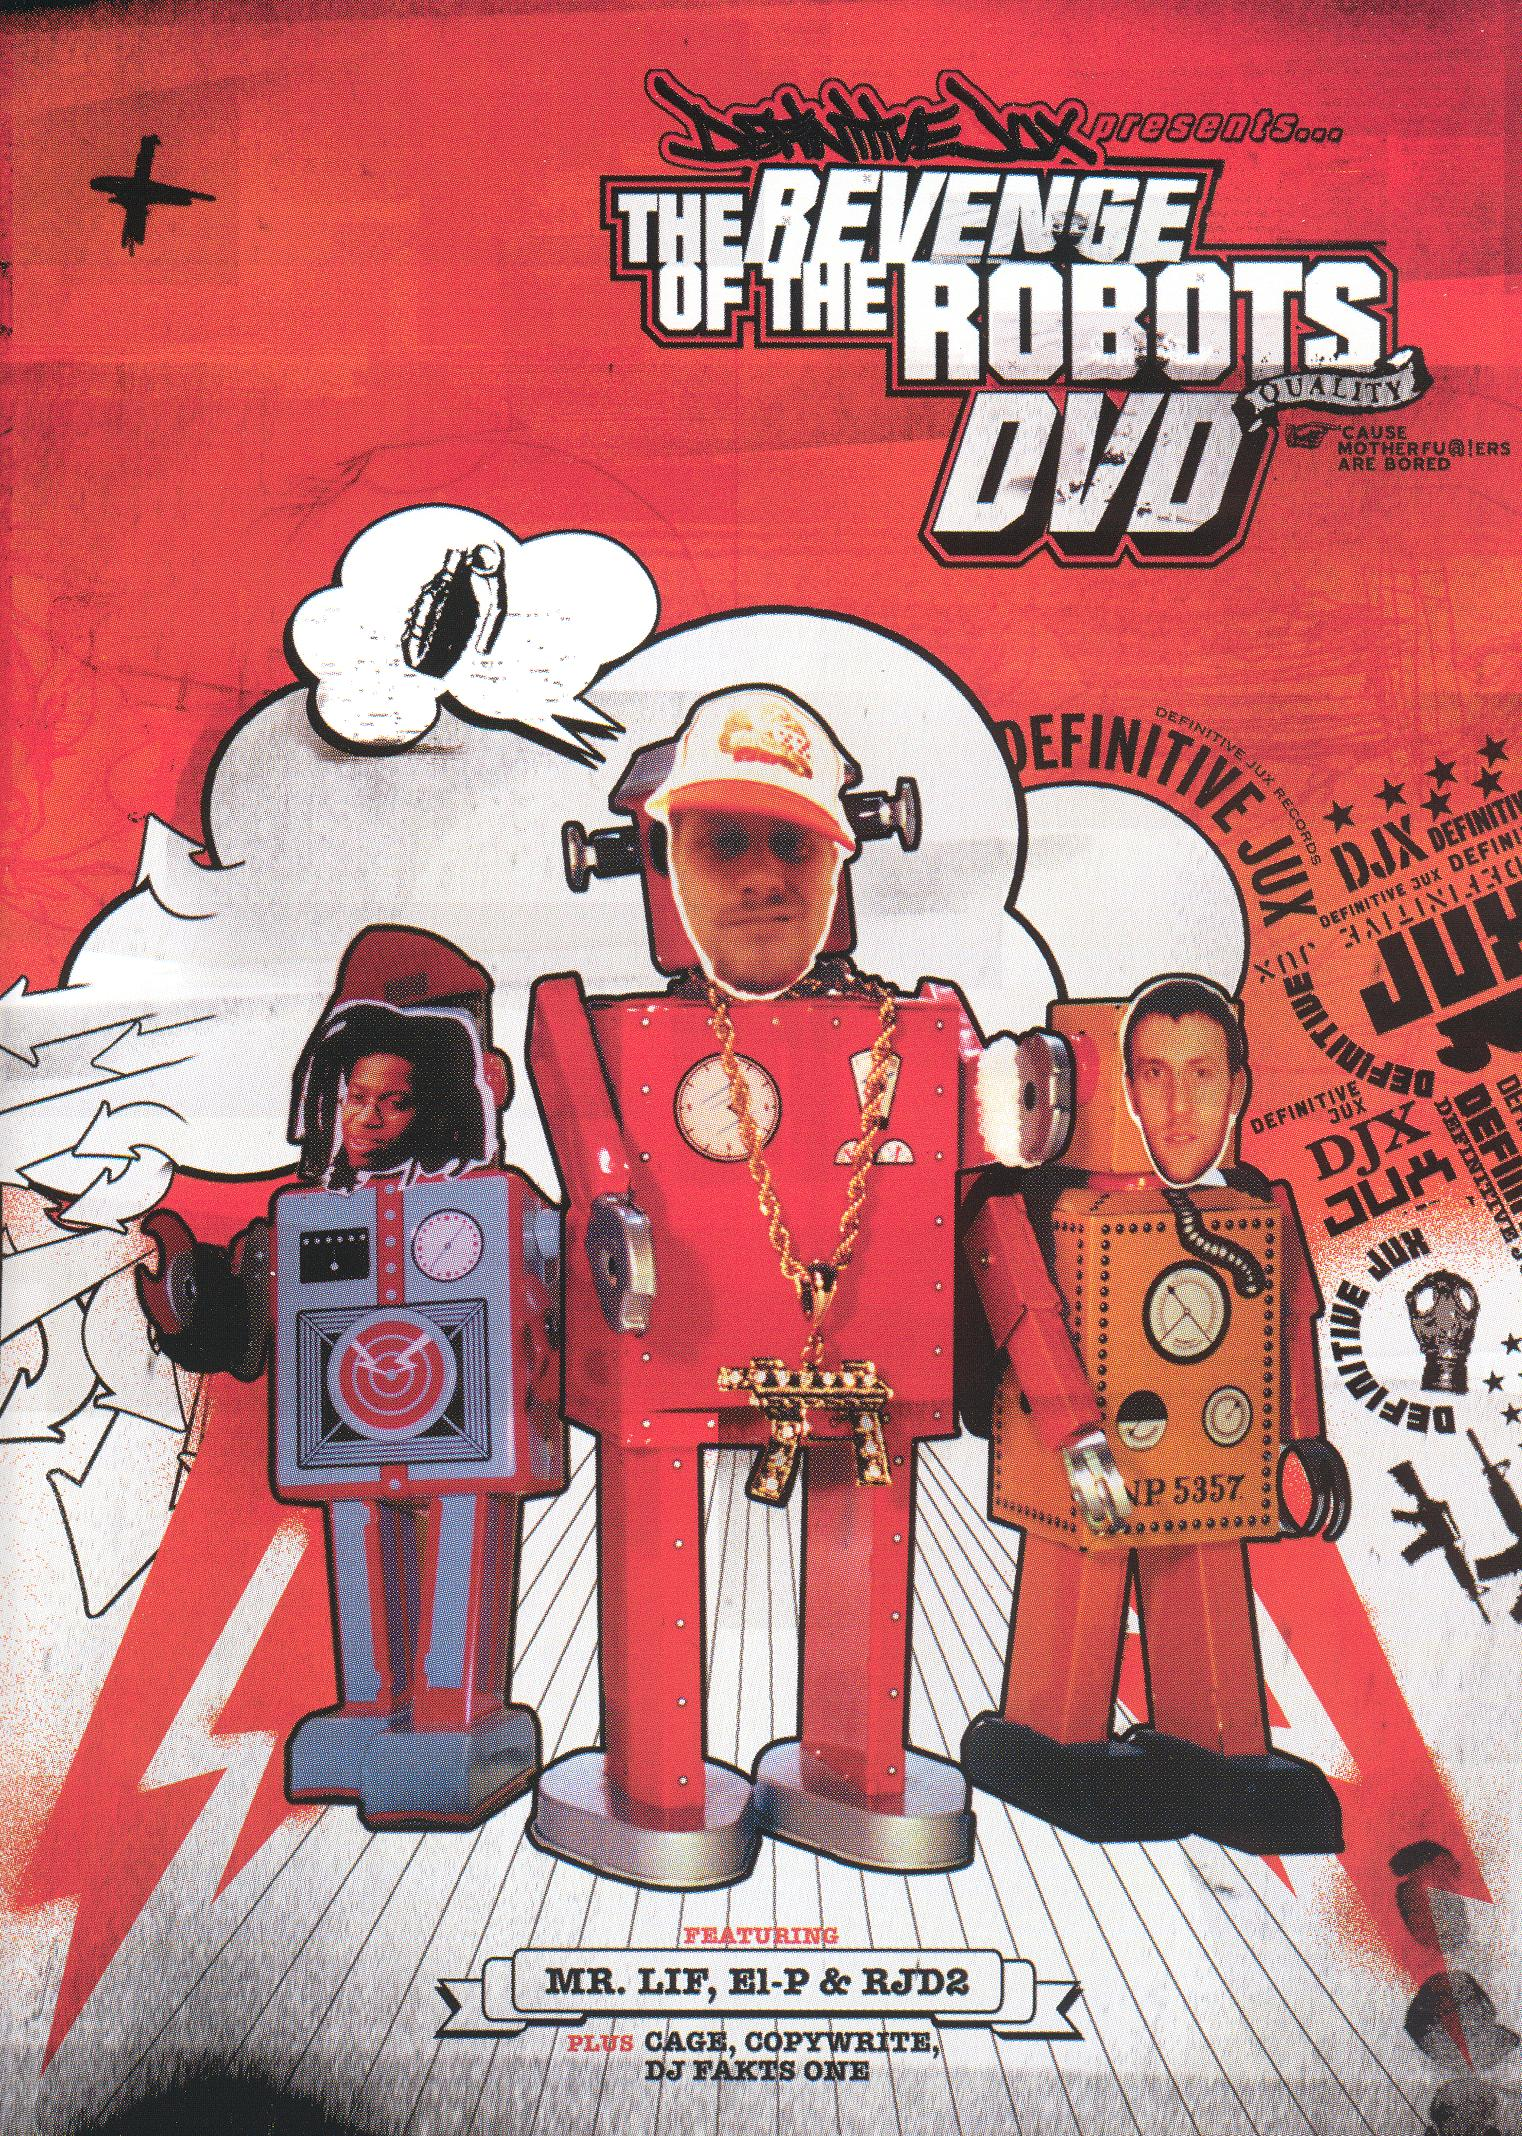 Definitive Jux Presents: The Revenge of the Robots